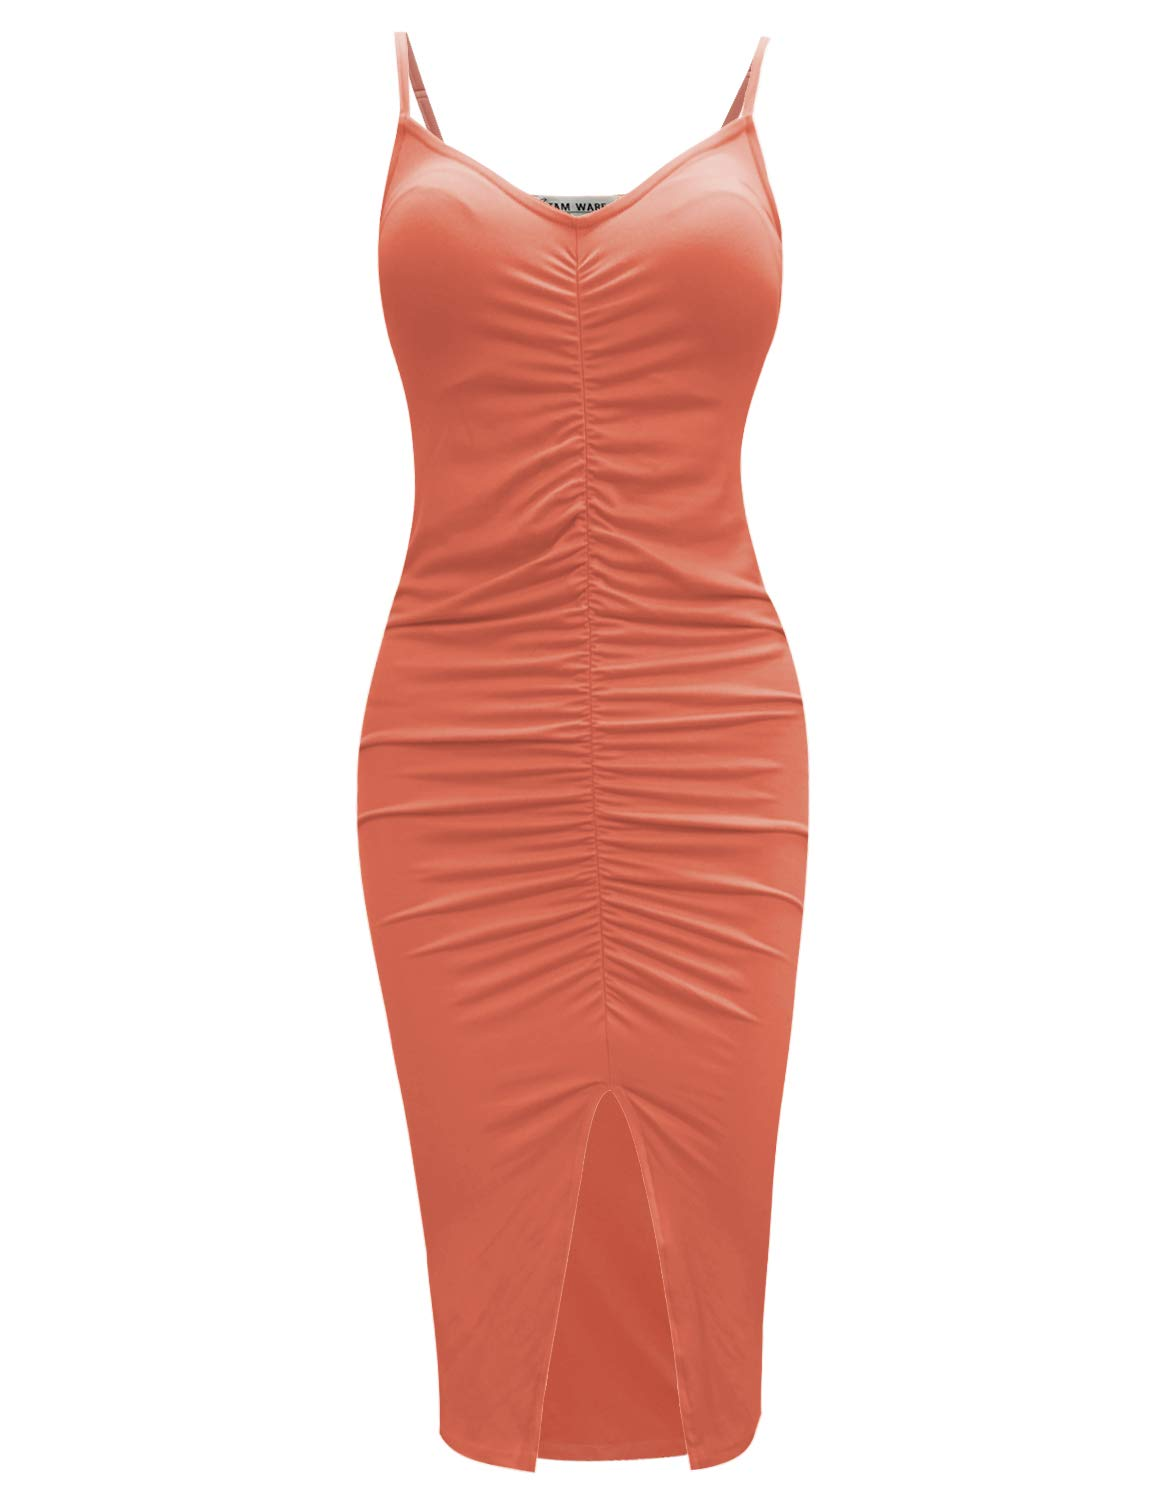 Available at Amazon: TAM WARE Women's Front Slit Ruched Spaghetti Straps Stretchy Bodycon Midi Dress